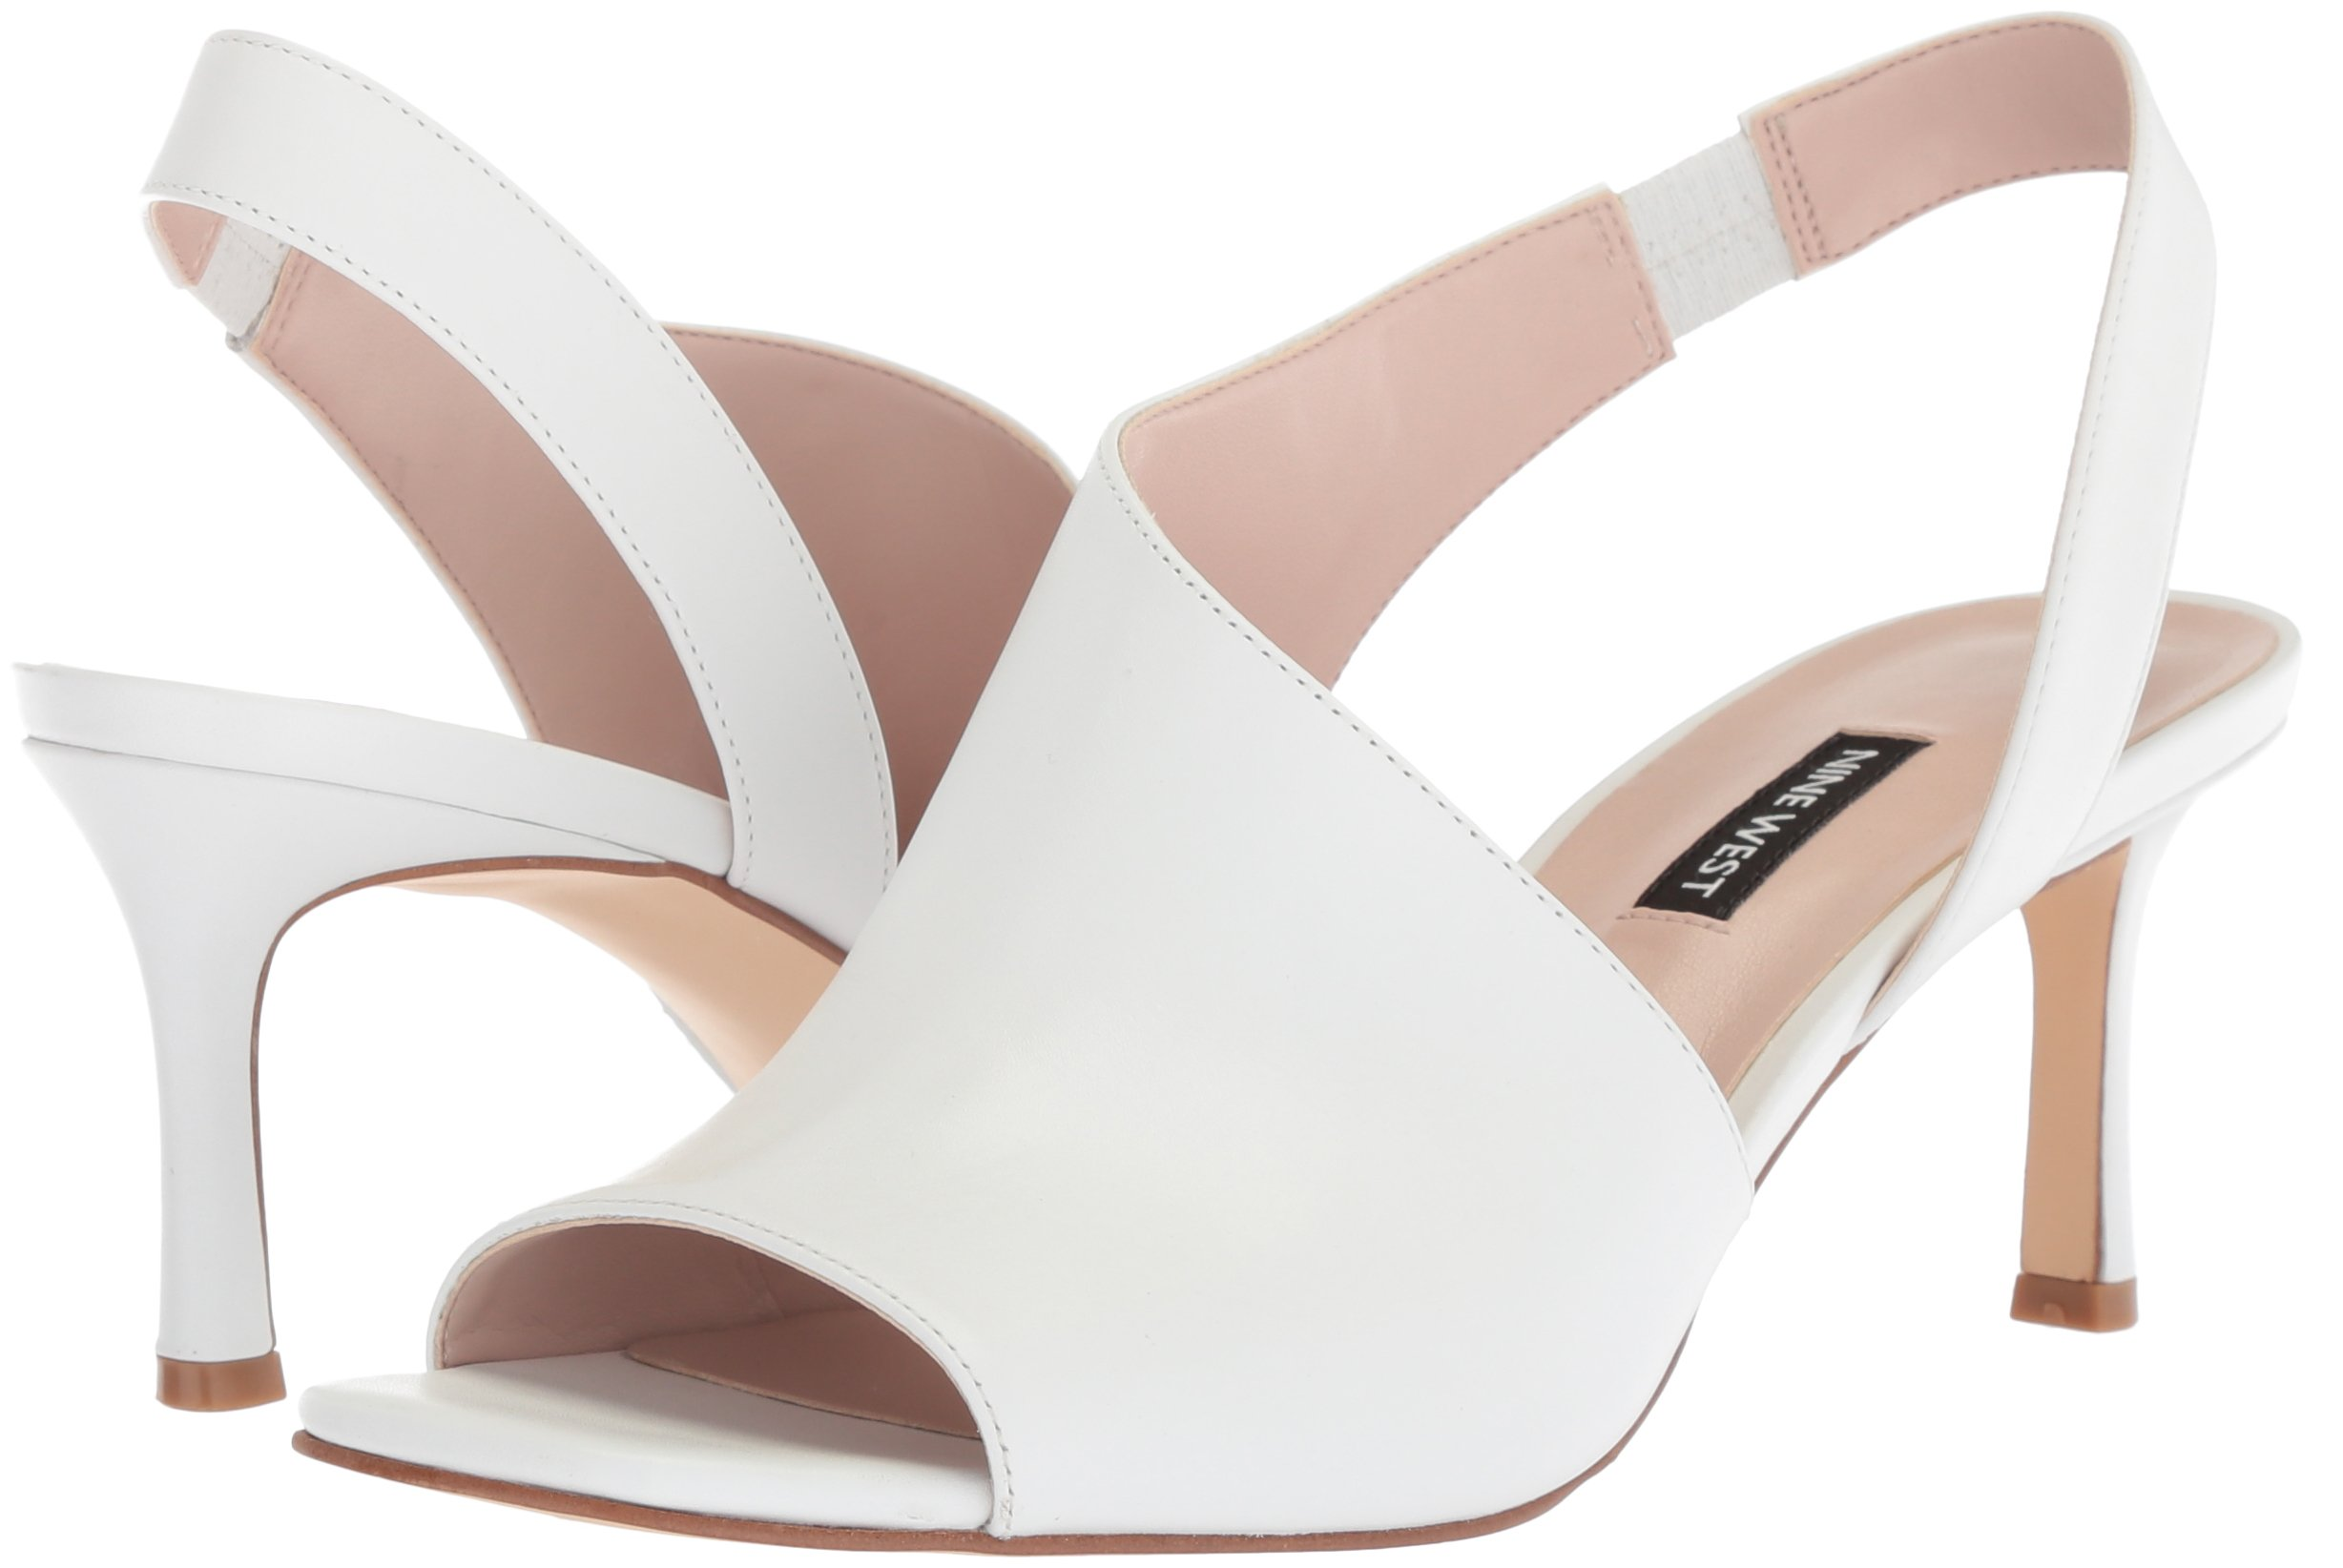 Nine West Women S Orrus Heeled Sandal White Leath